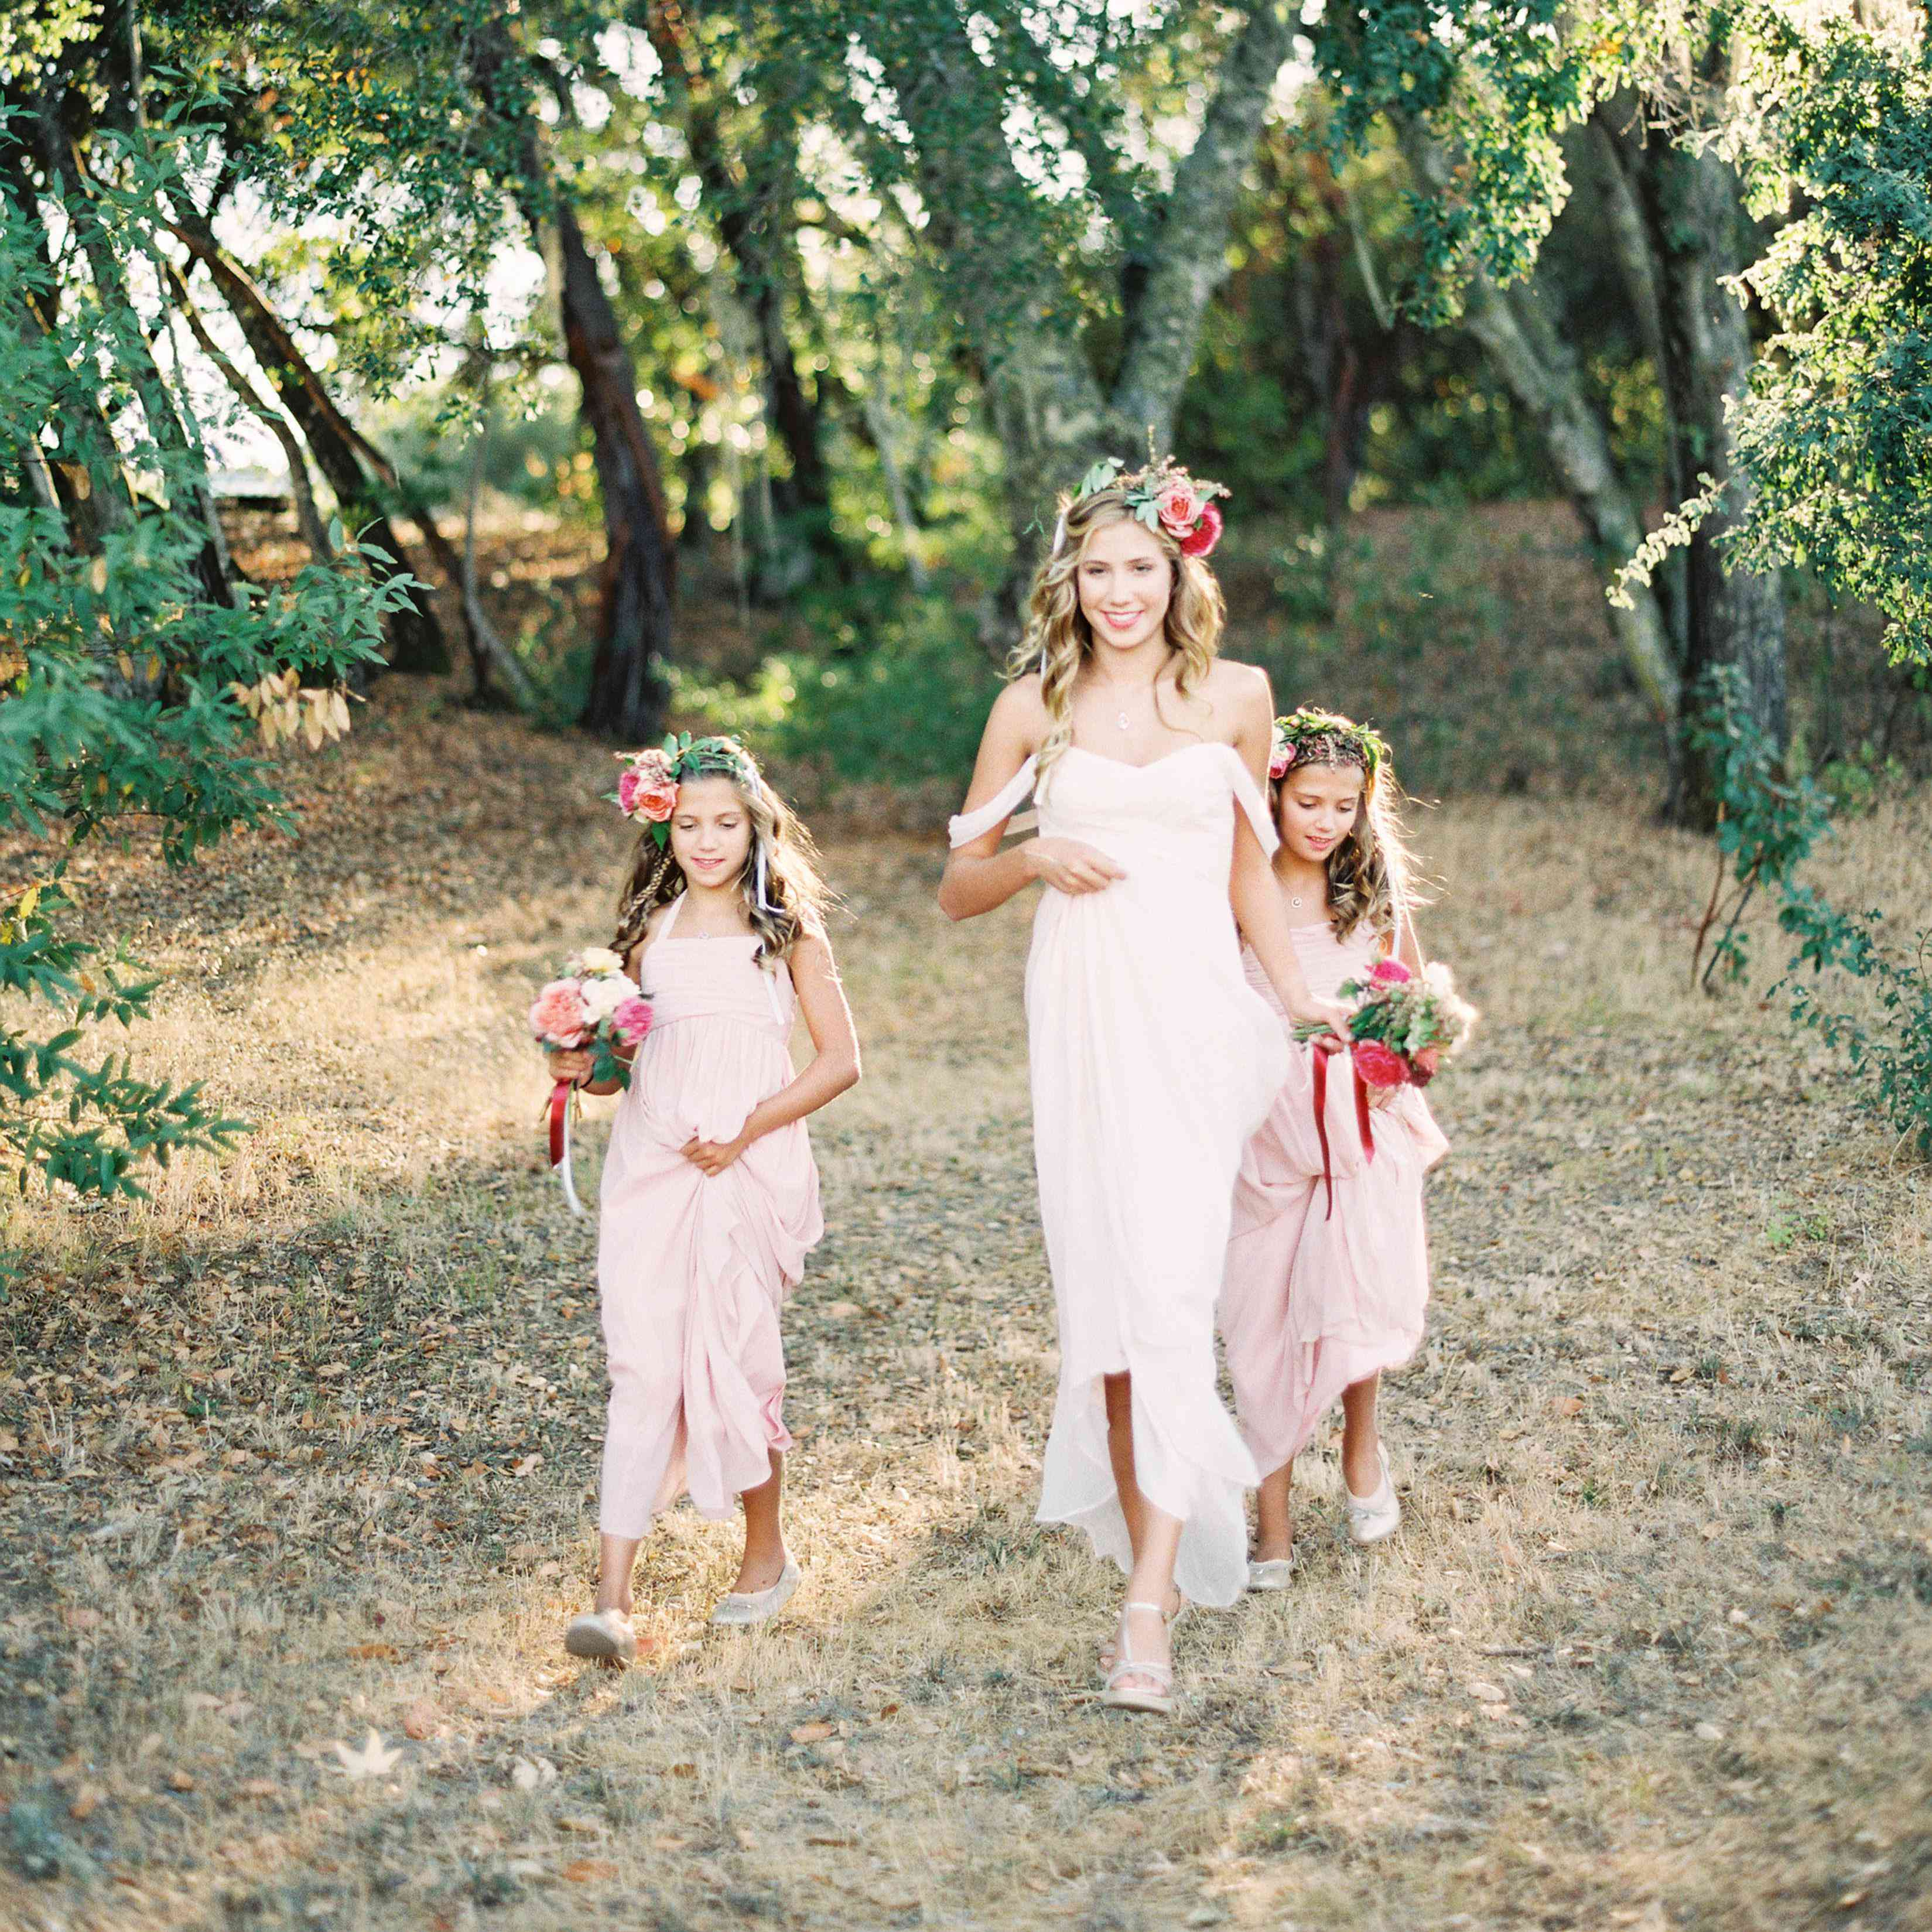 Junior Bridesmaids 101 Everything You Need To Know About